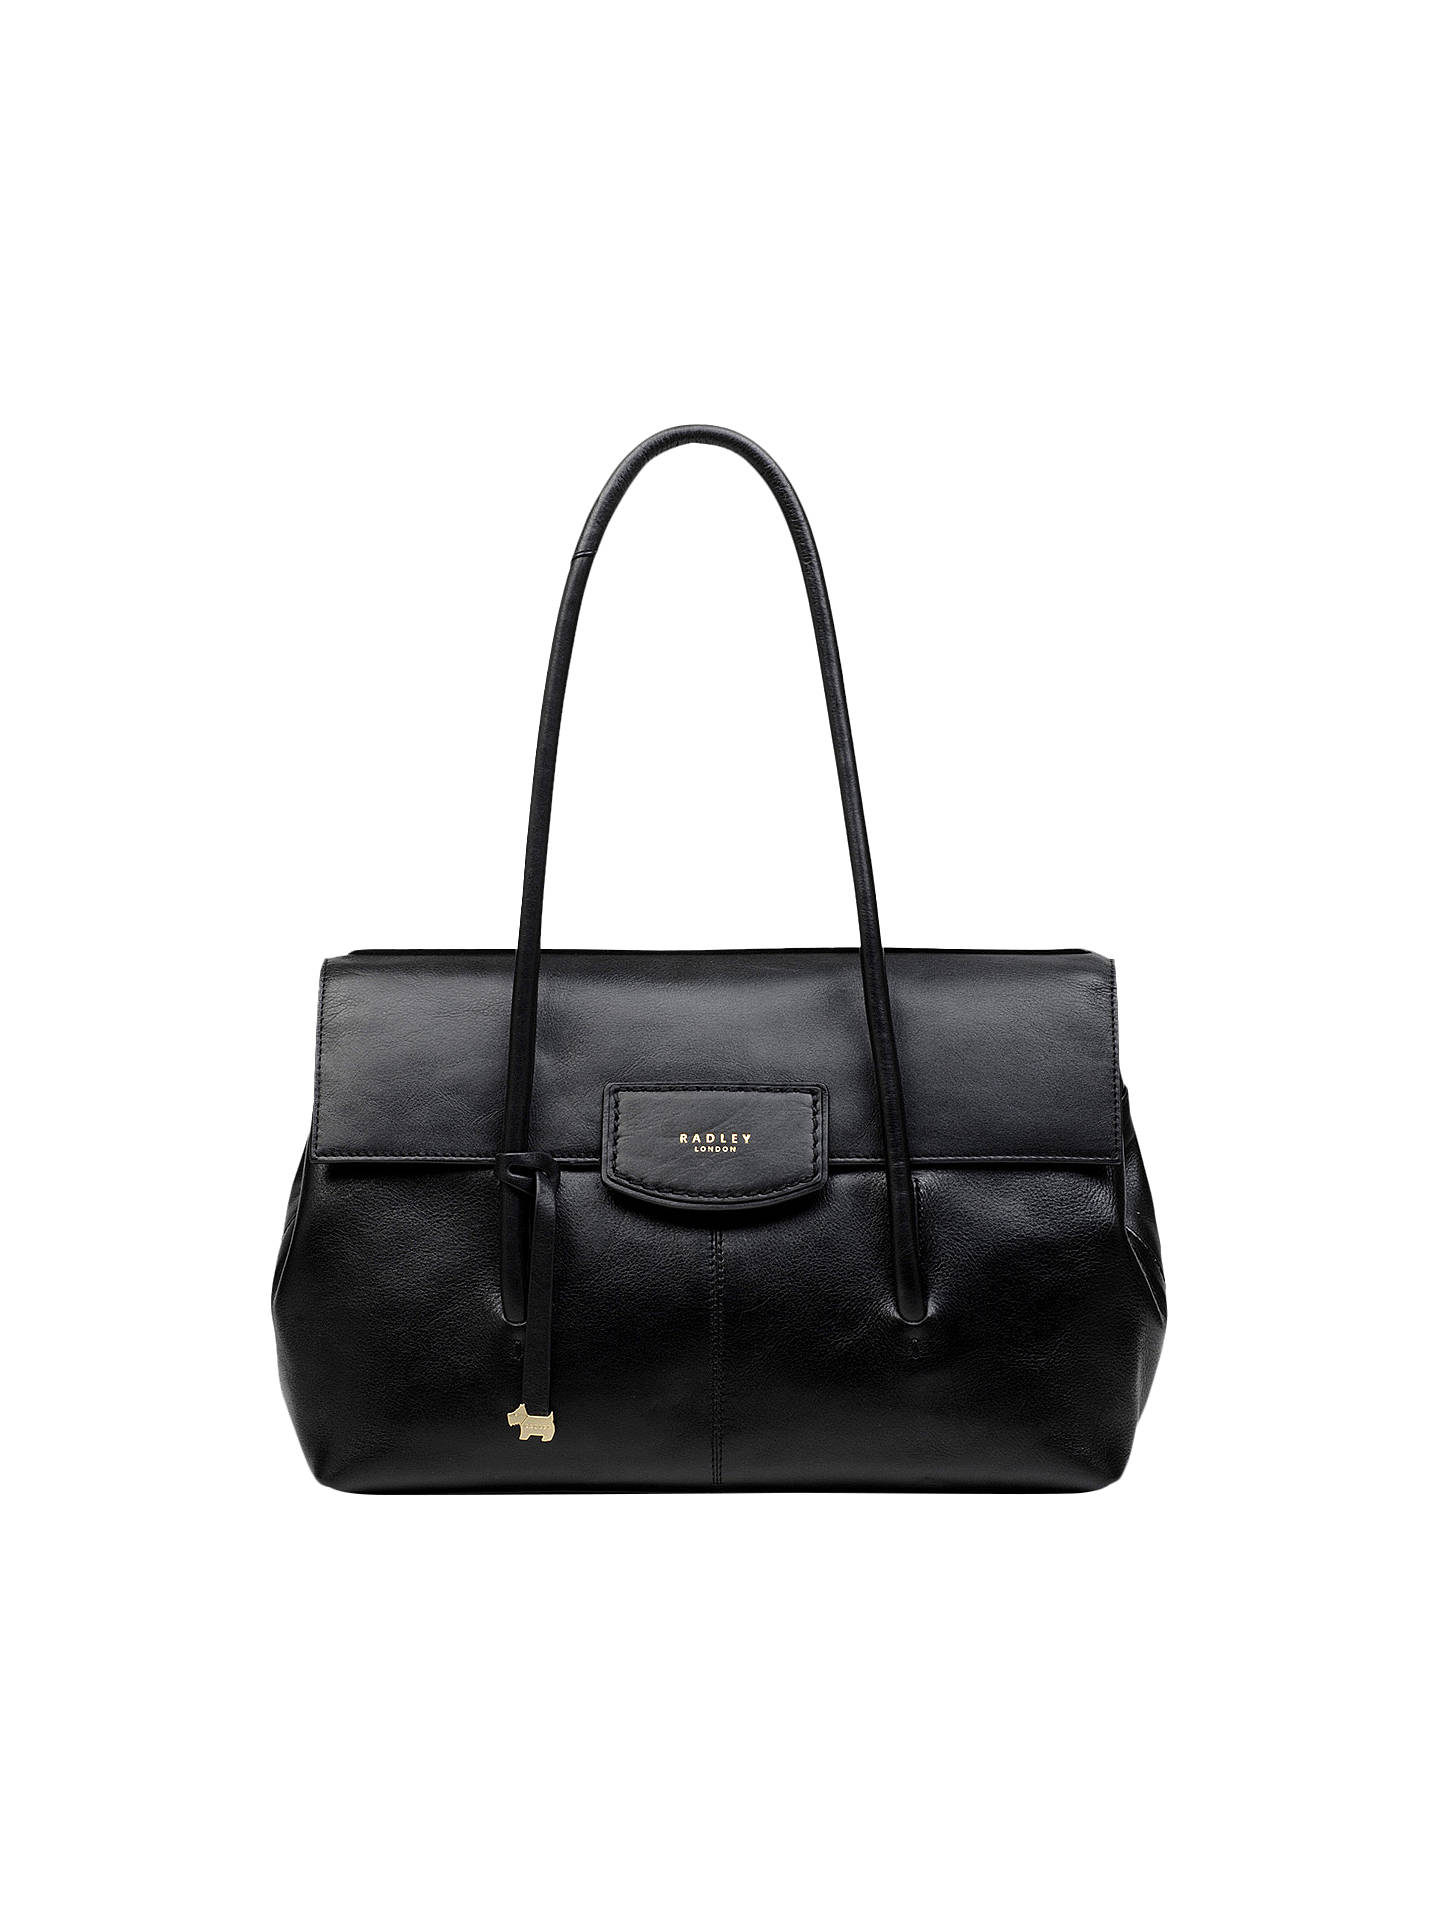 f662da1177dd2 Buy Radley Burnham Beeches Leather Large Flapover Shoulder Bag, Black  Online at johnlewis.com ...